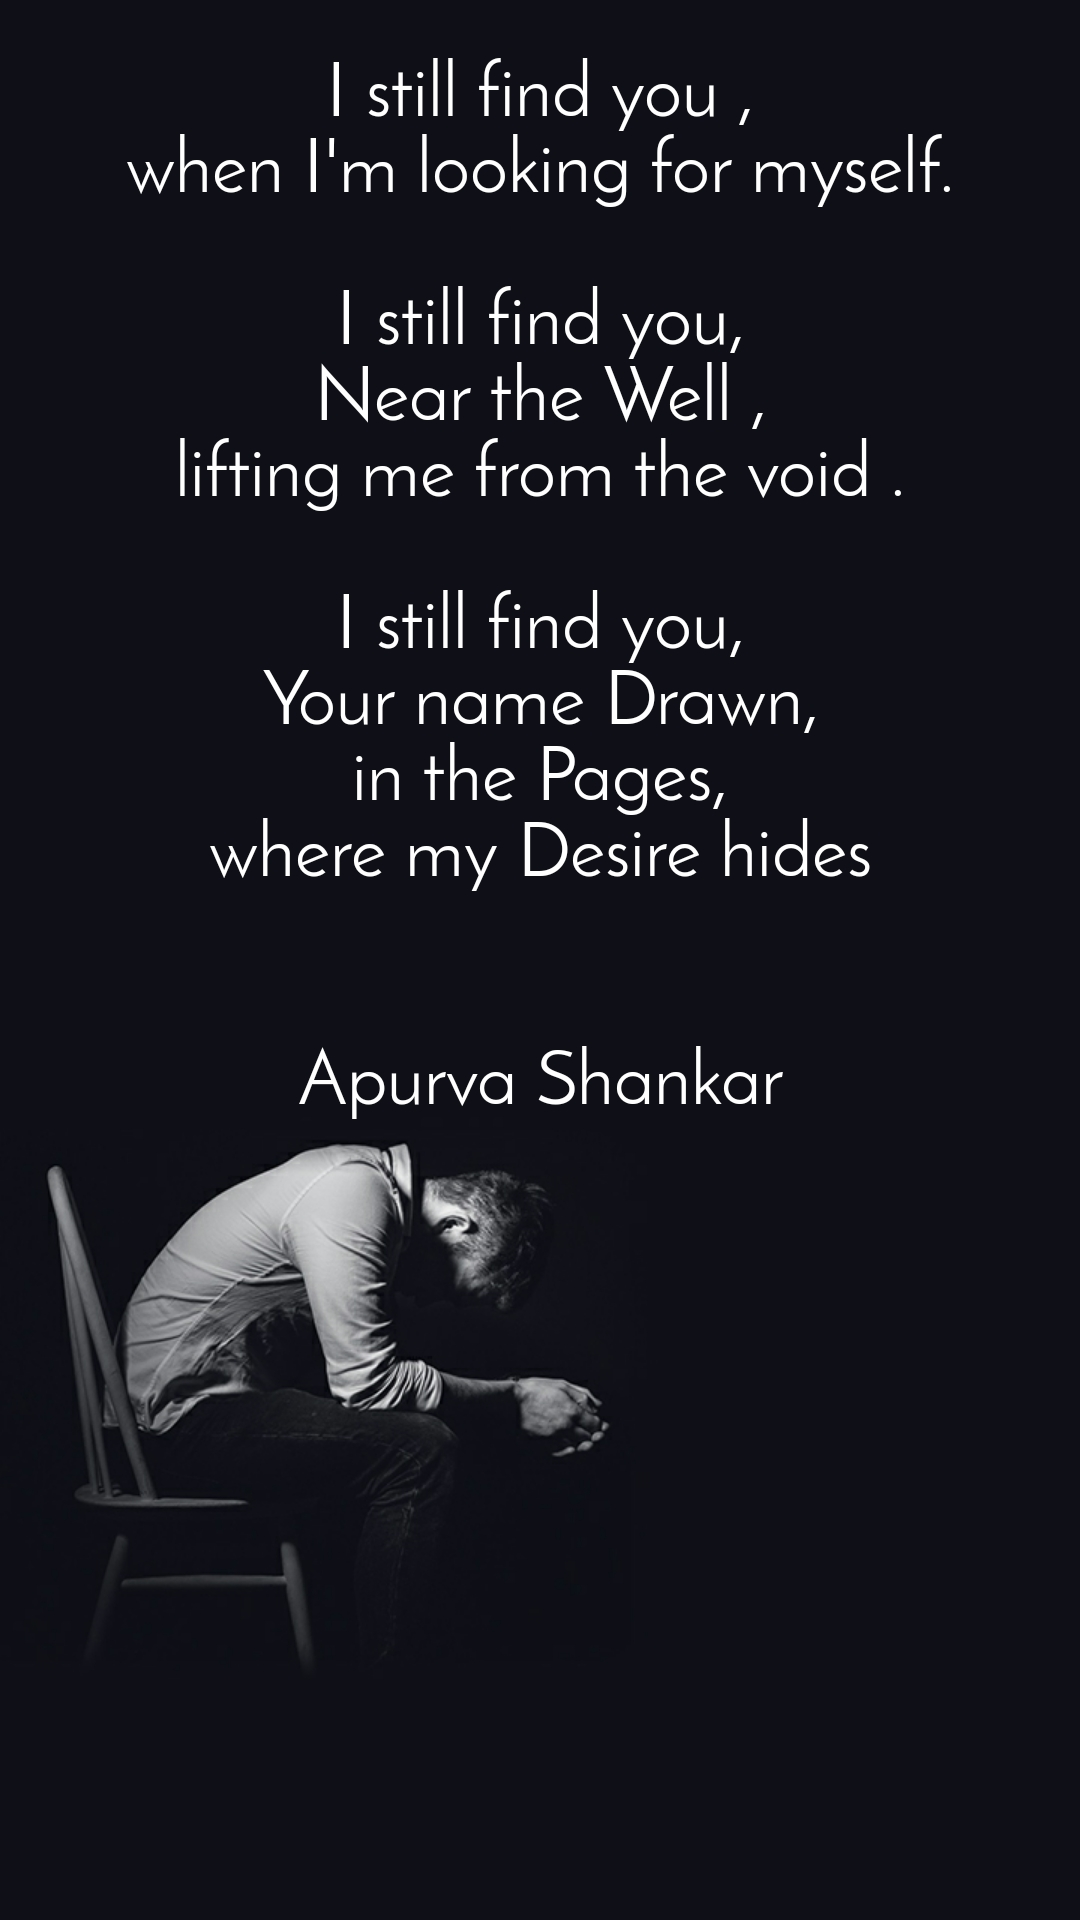 I still find you ,  when I'm looking for myself.   I still find you,  Near the Well ,  lifting me from the void .   I still find you,  Your name Drawn,  in the Pages,  where my Desire hides    Apurva Shankar